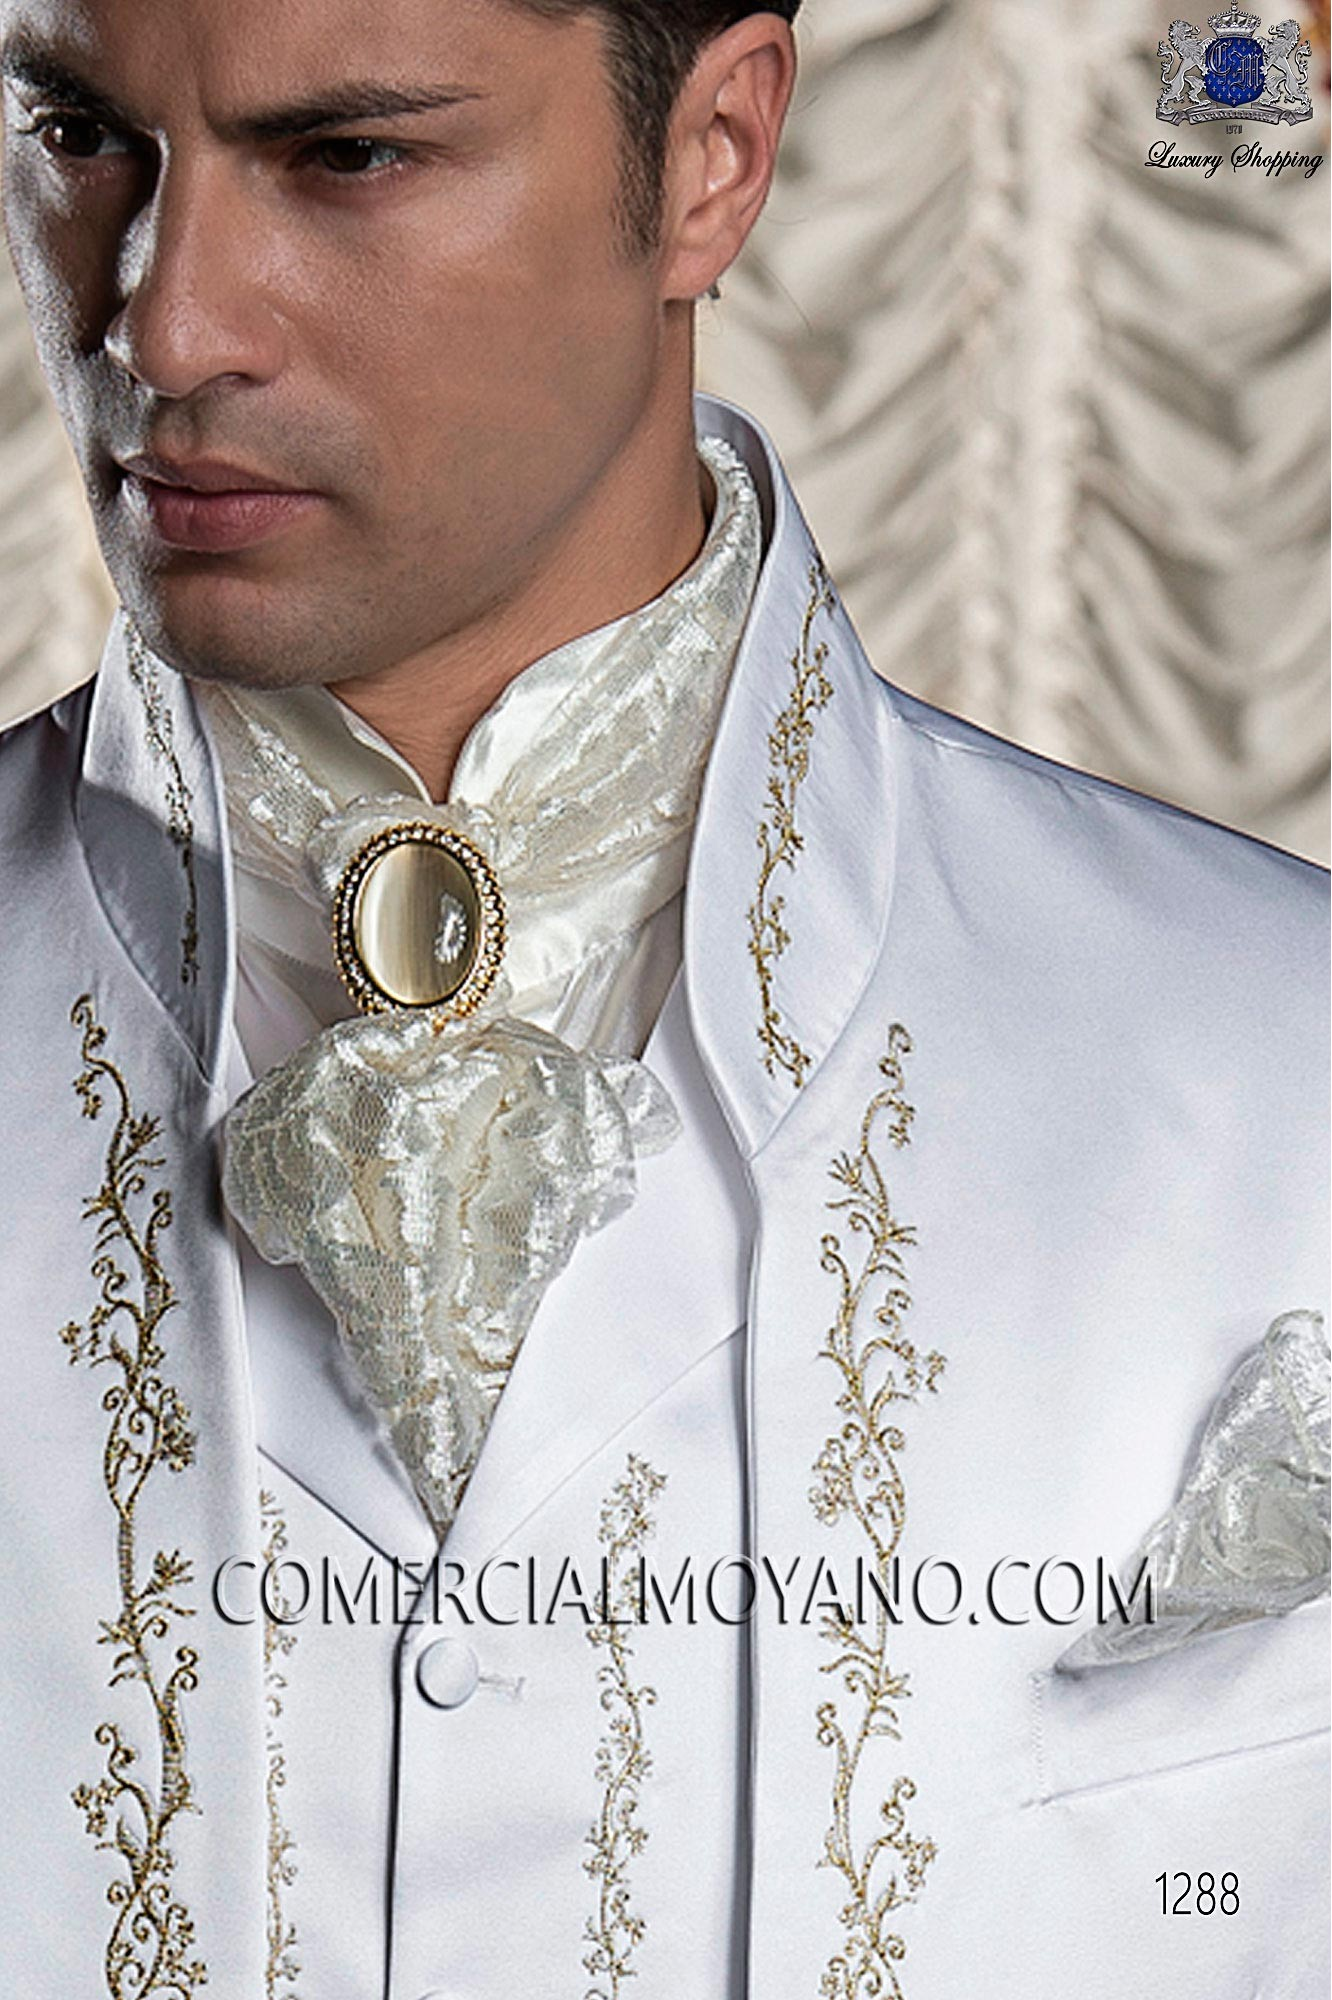 Baroque white men wedding suit, model: 1288 Ottavio Nuccio Gala ...